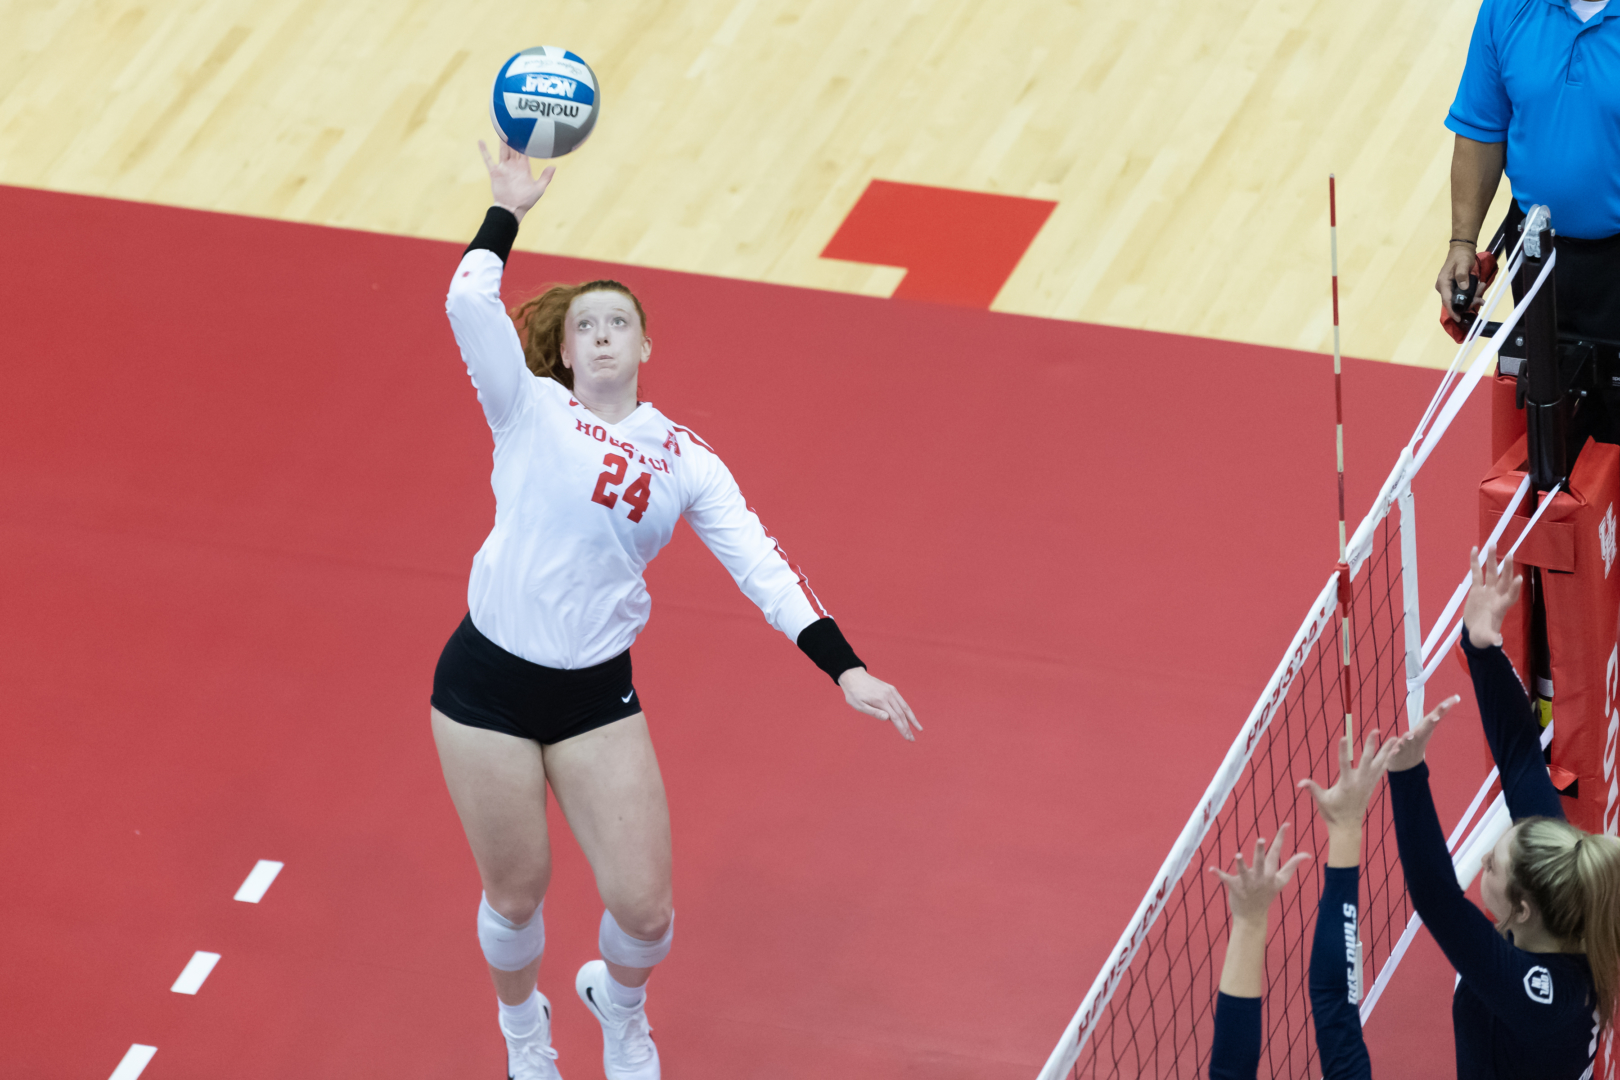 Sophomore outside hitter Abbie Jackson goes for the kill during a 2021 Houston match. The UH volleyball team swept Tulsa over the weekend. | Courtesy of UH athletics